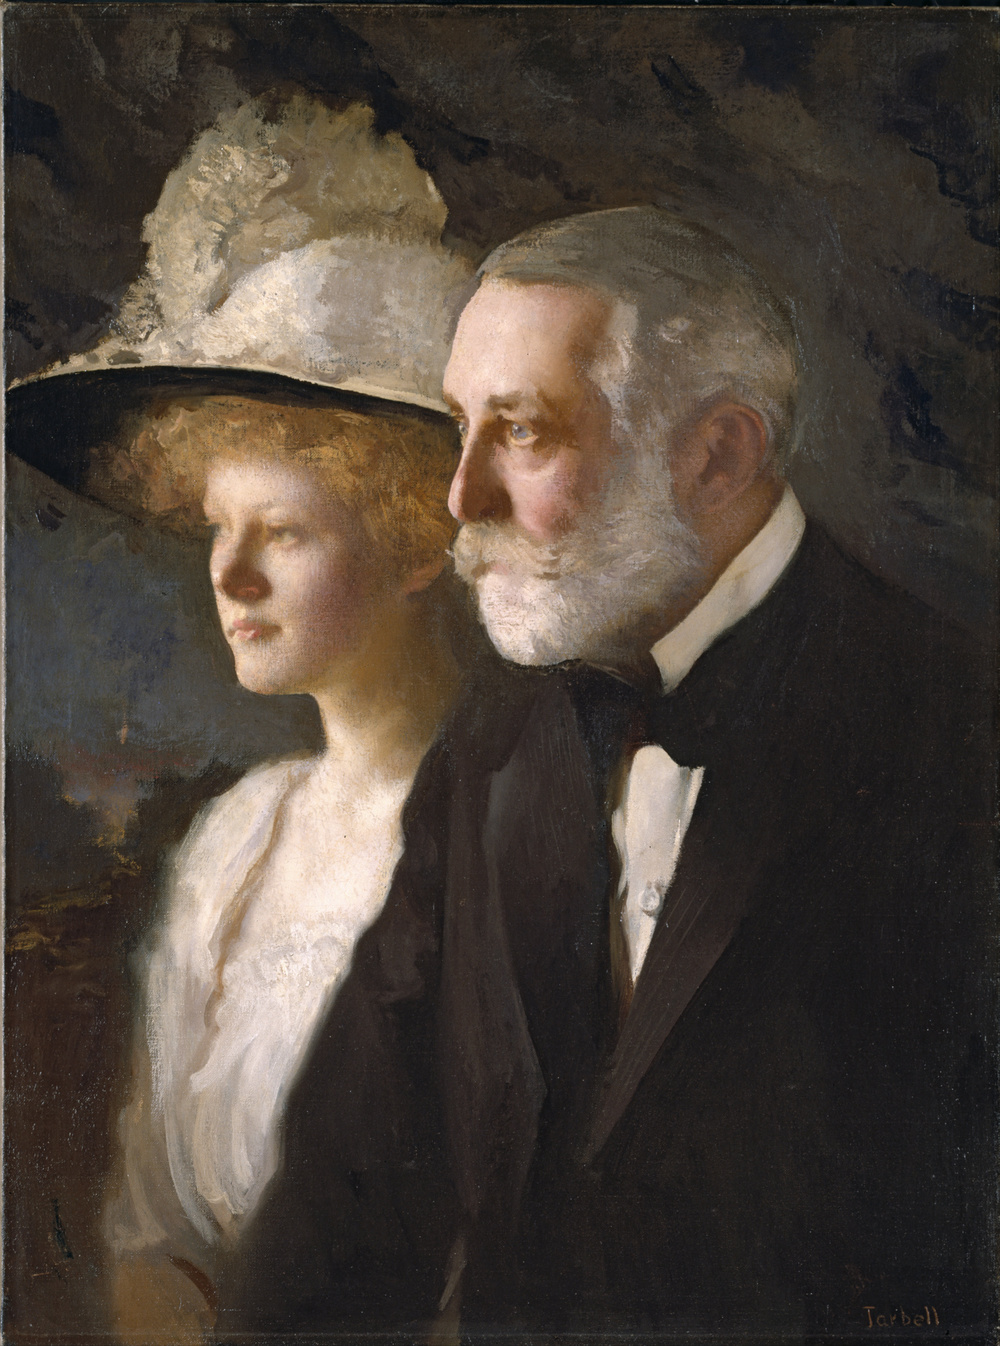 Edmund C. Tarbell, Henry Clay Frick and Helen Frick, 1910, Oil on canvas